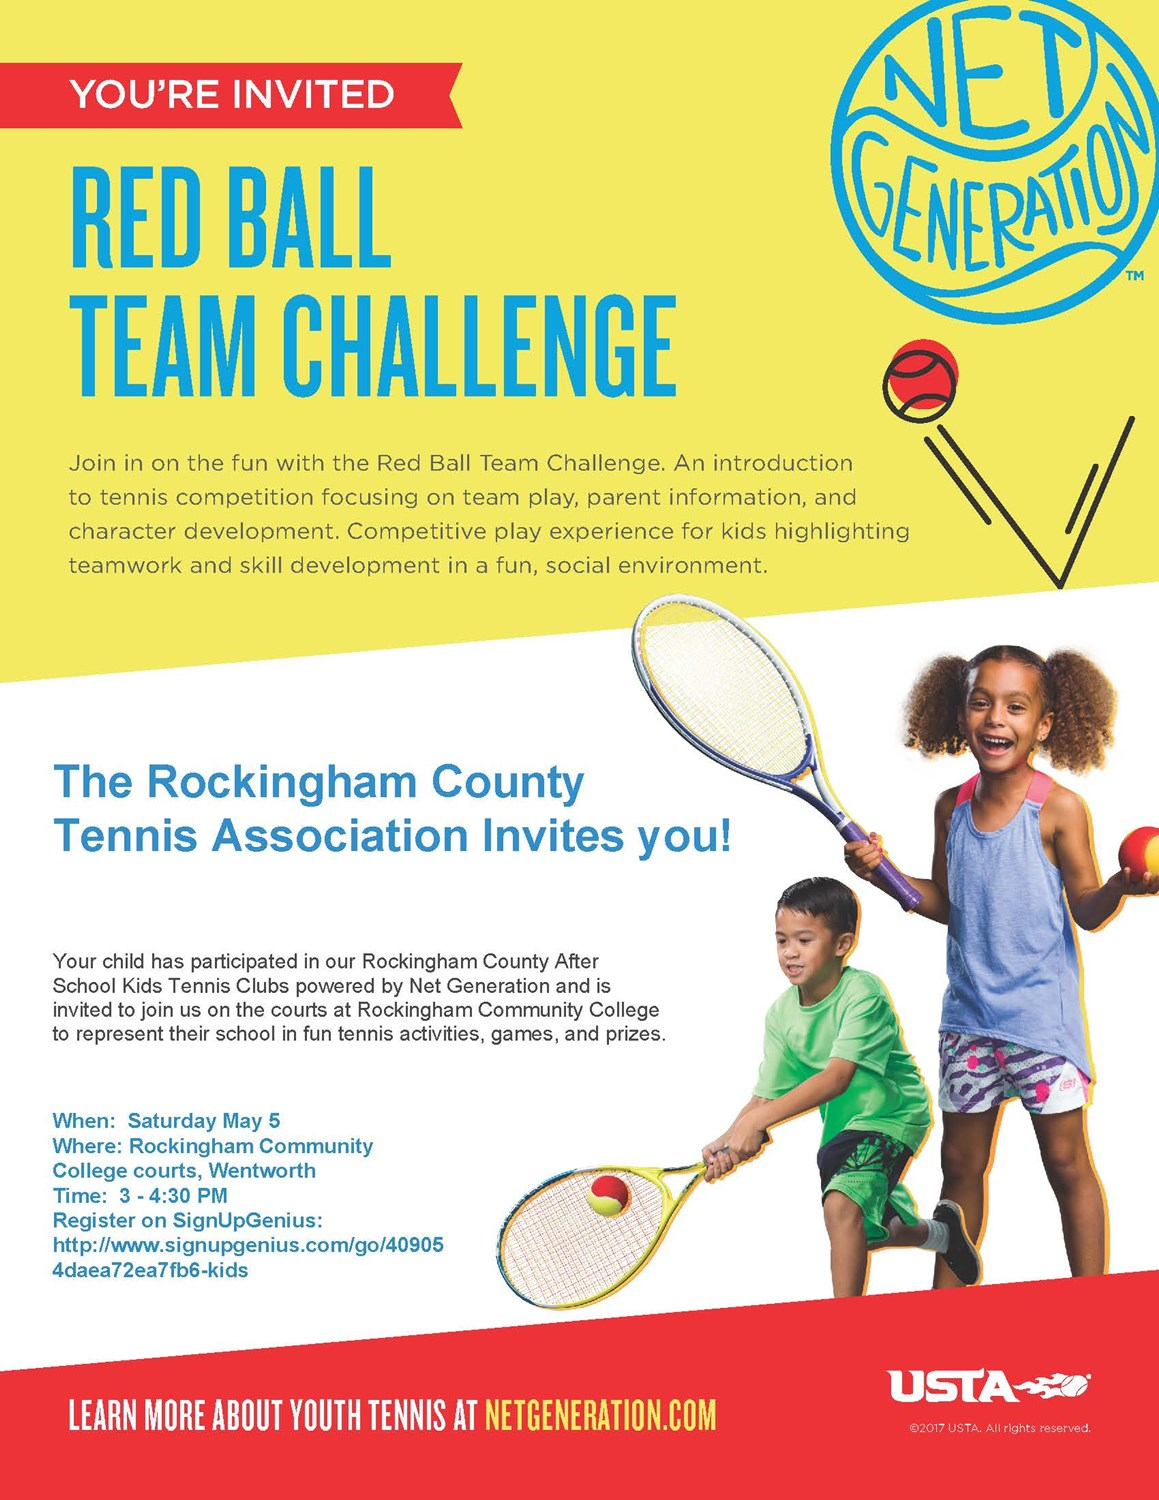 Net_Generation_Red_Ball_Team_Challenge_Flyer_-_RCTA